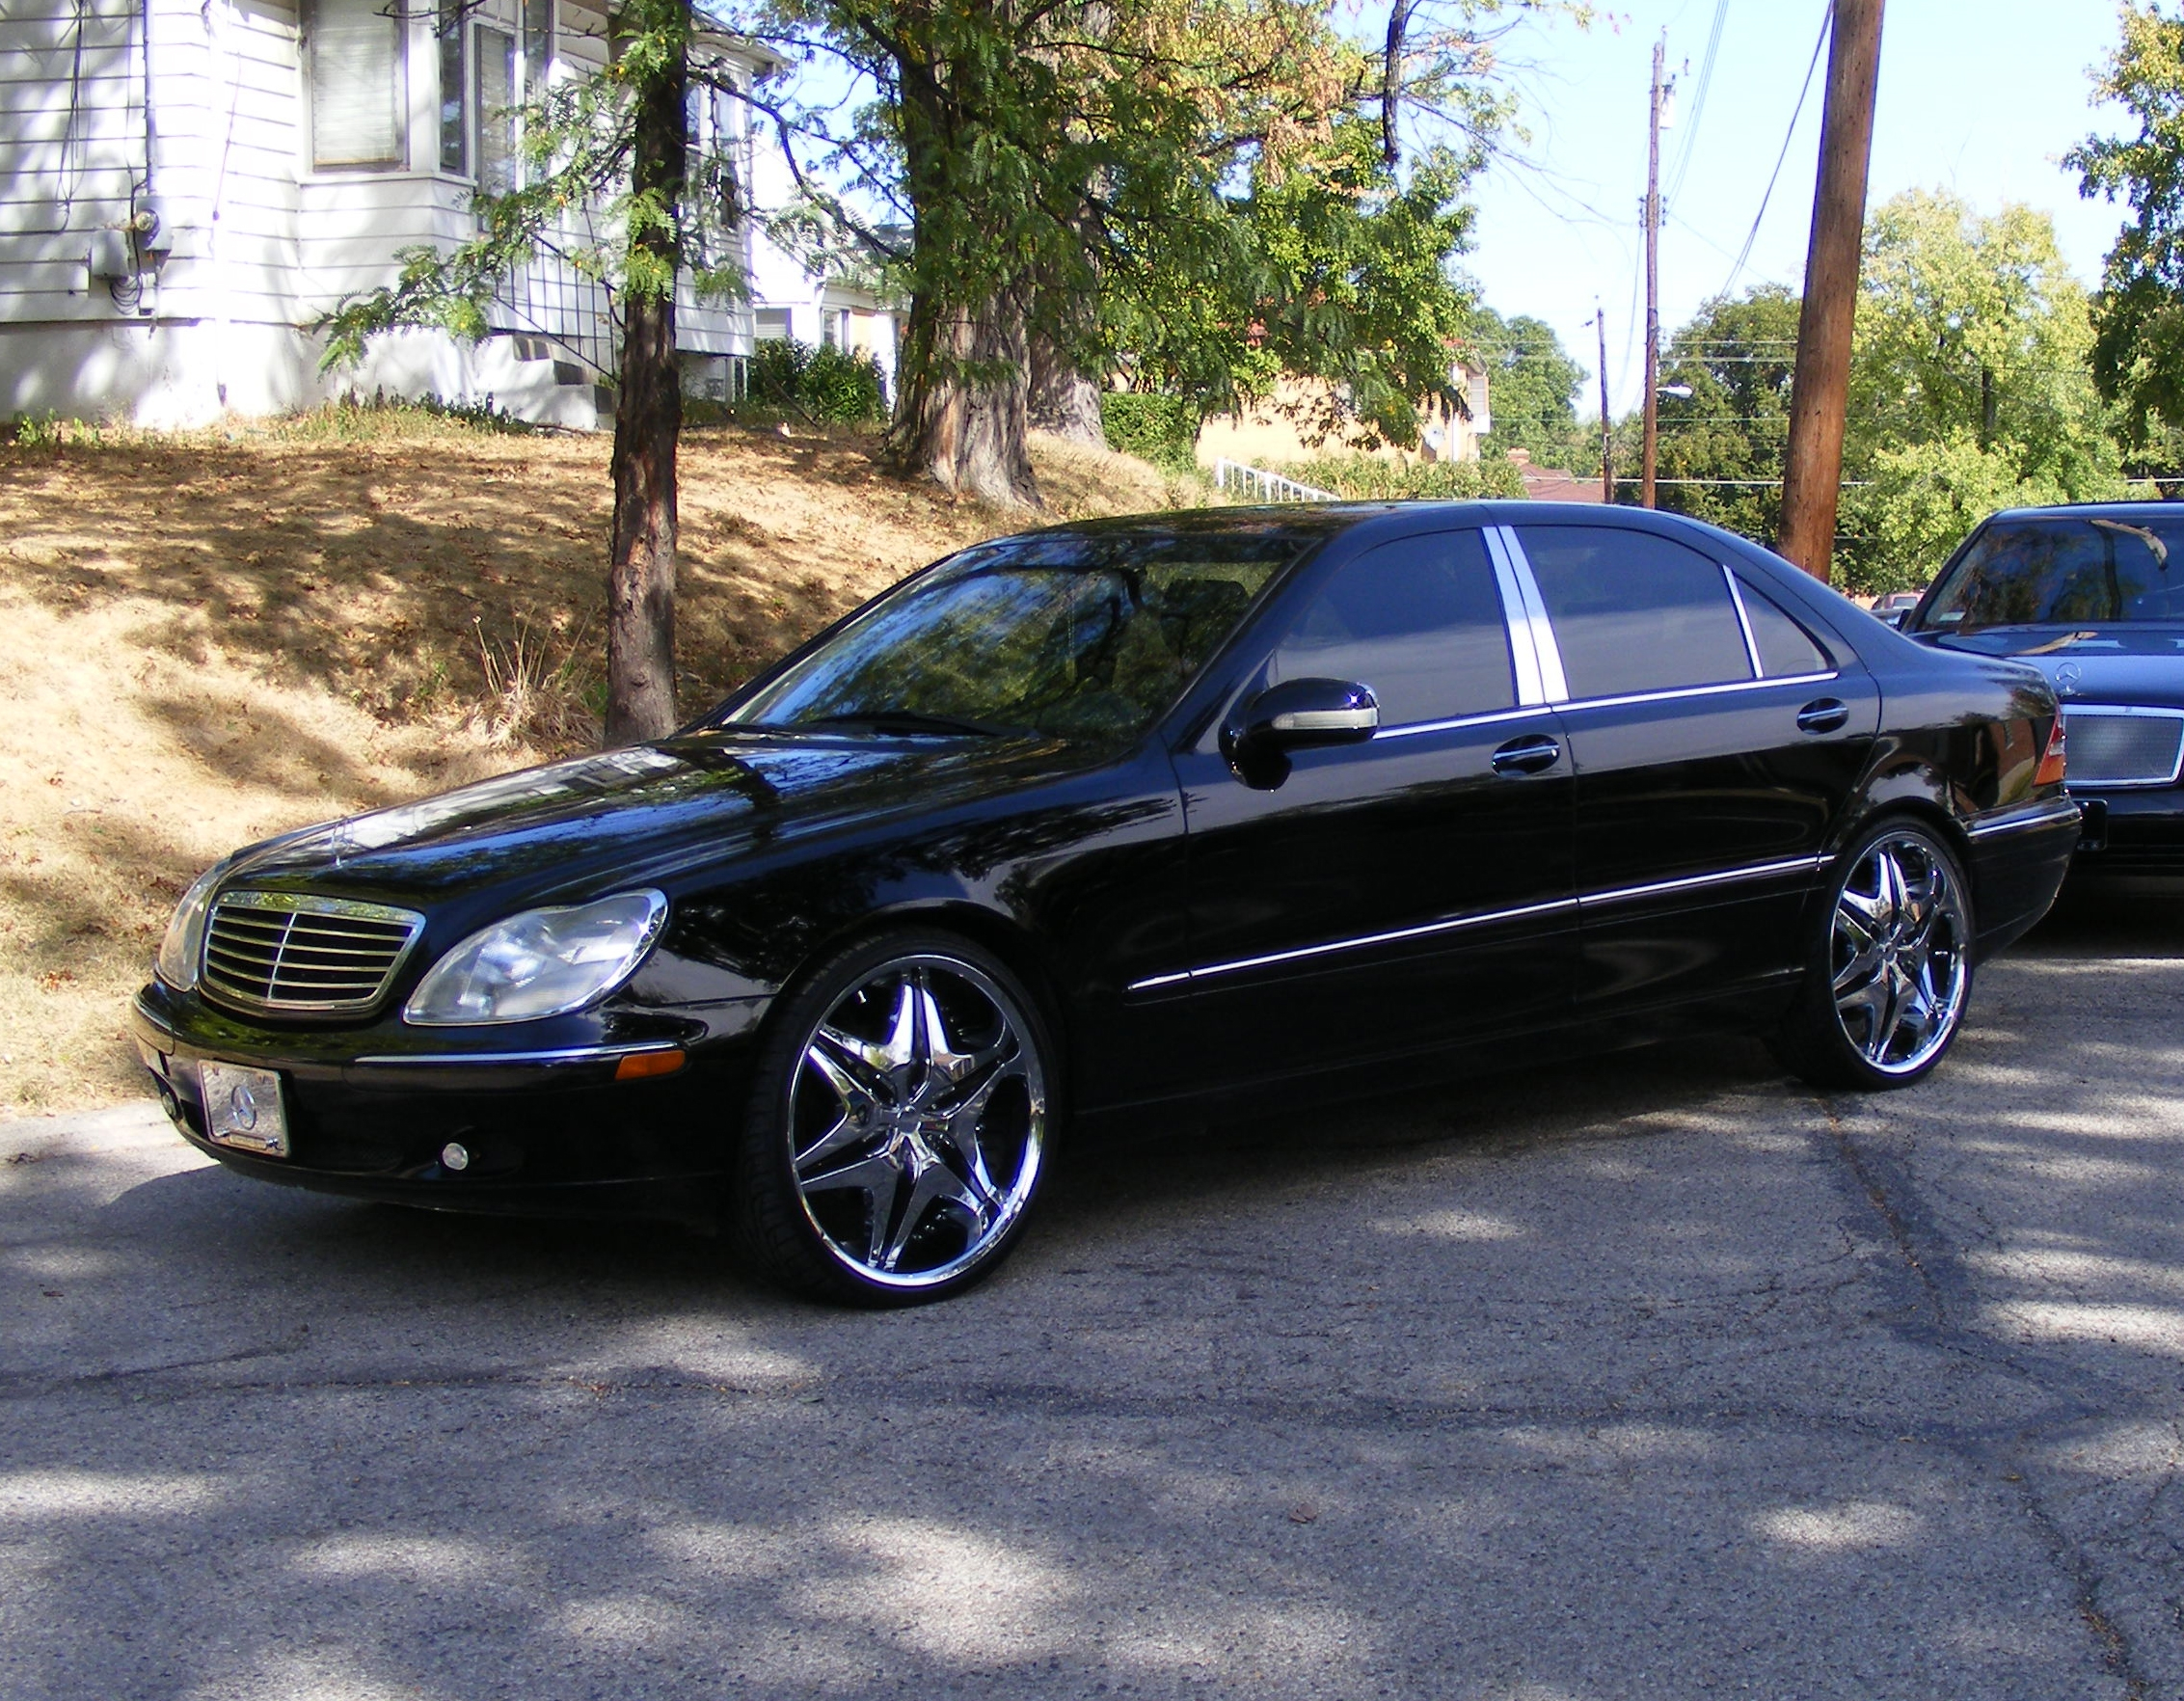 Madlmusic 39 s 2000 mercedes benz s class s500 sedan 4d in for Mercedes benz s class 2000